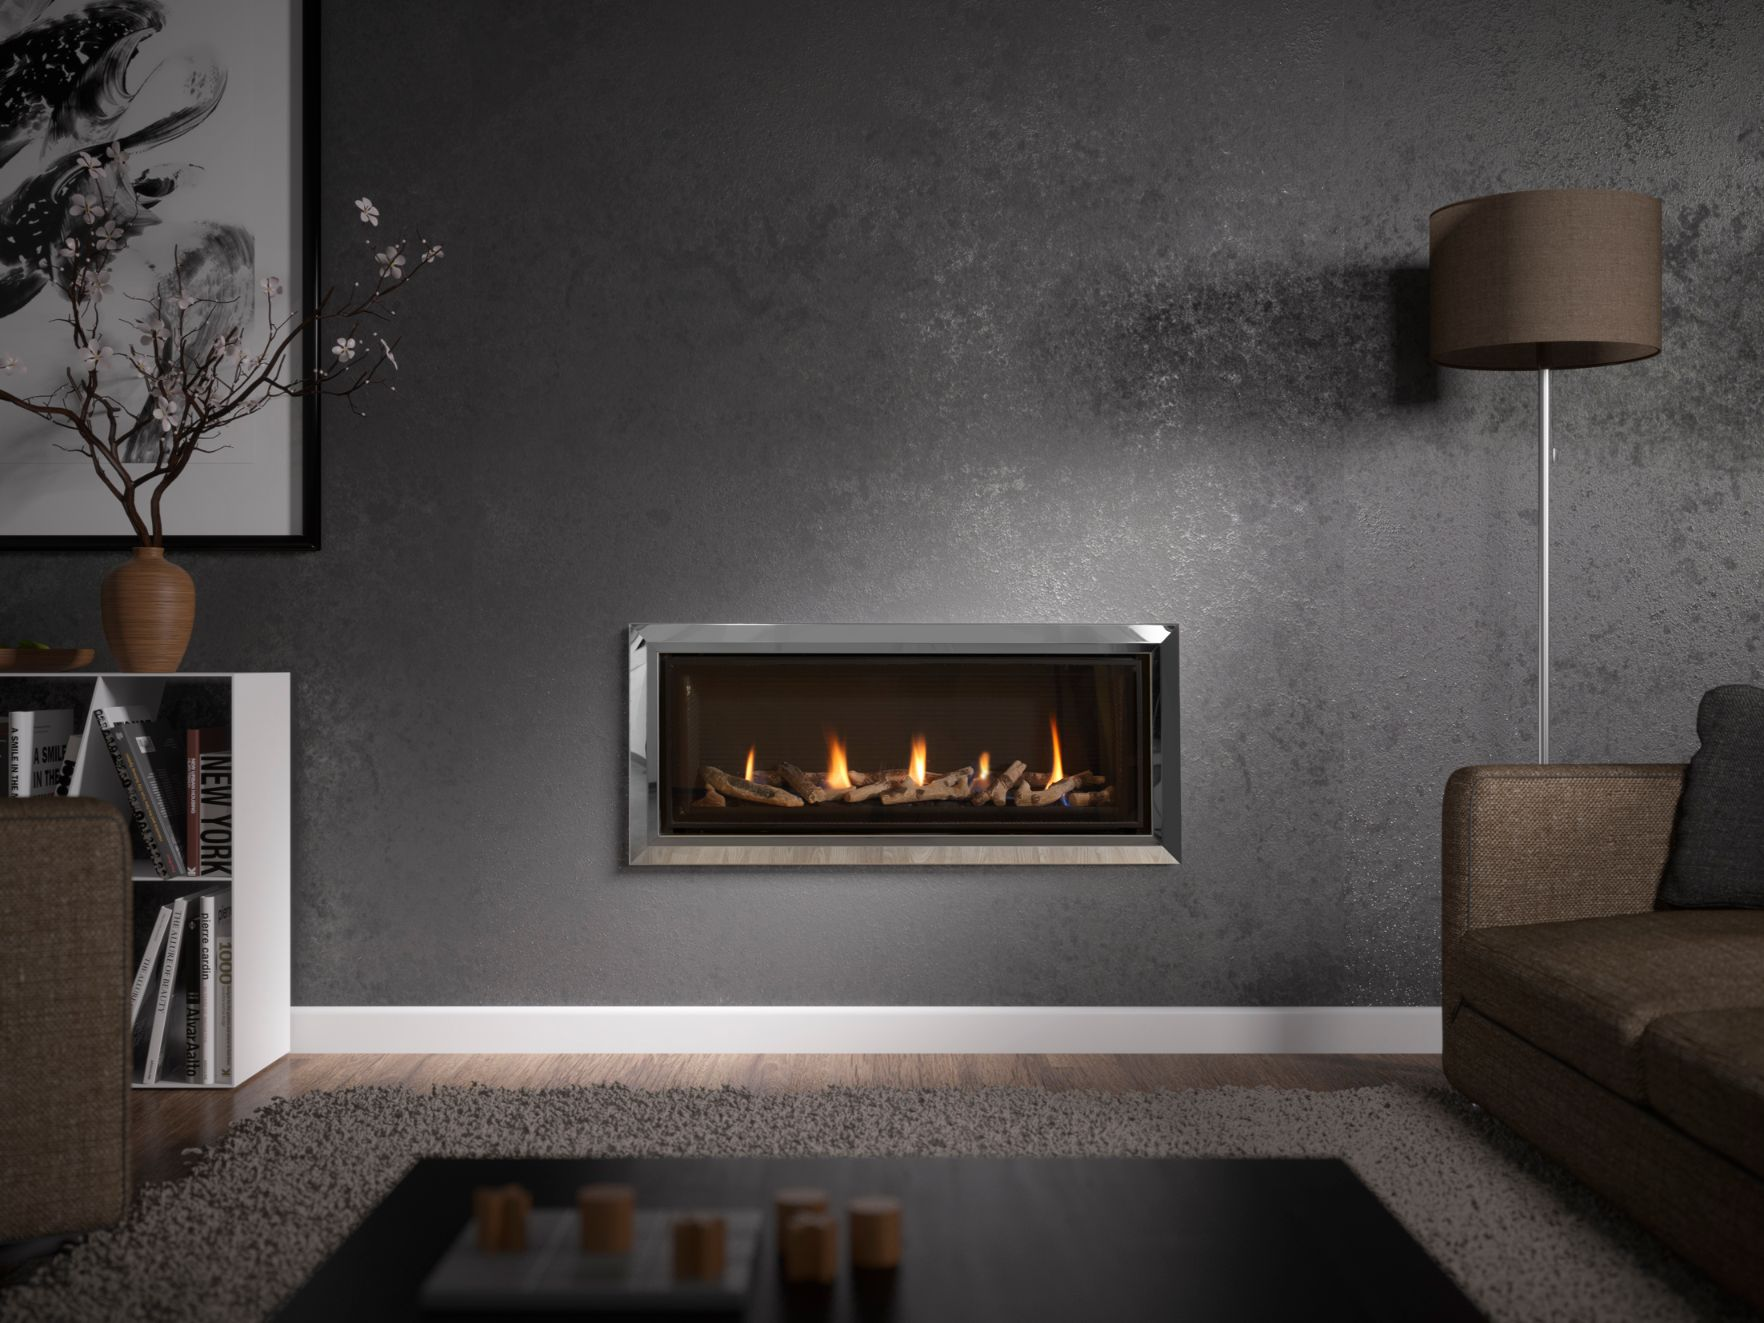 Infinity 890 Balance Flue Gas Fire, Hole in the Wall Gas Fire